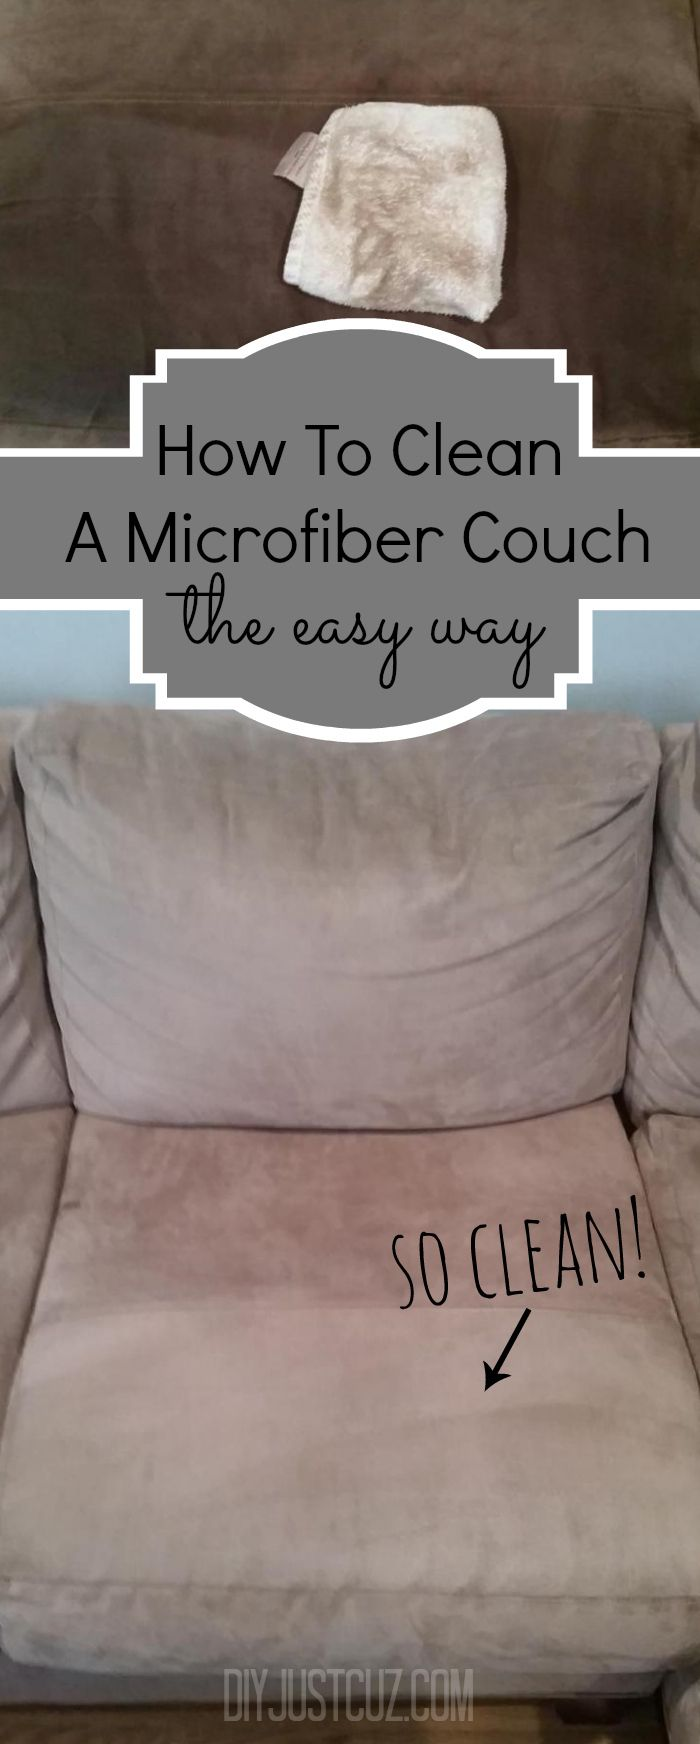 The Best Thing About A Microfiber Couch Is How Easily They Can Be Cleaned Read Tips On Cleaning Water Stains Diyjustcuz